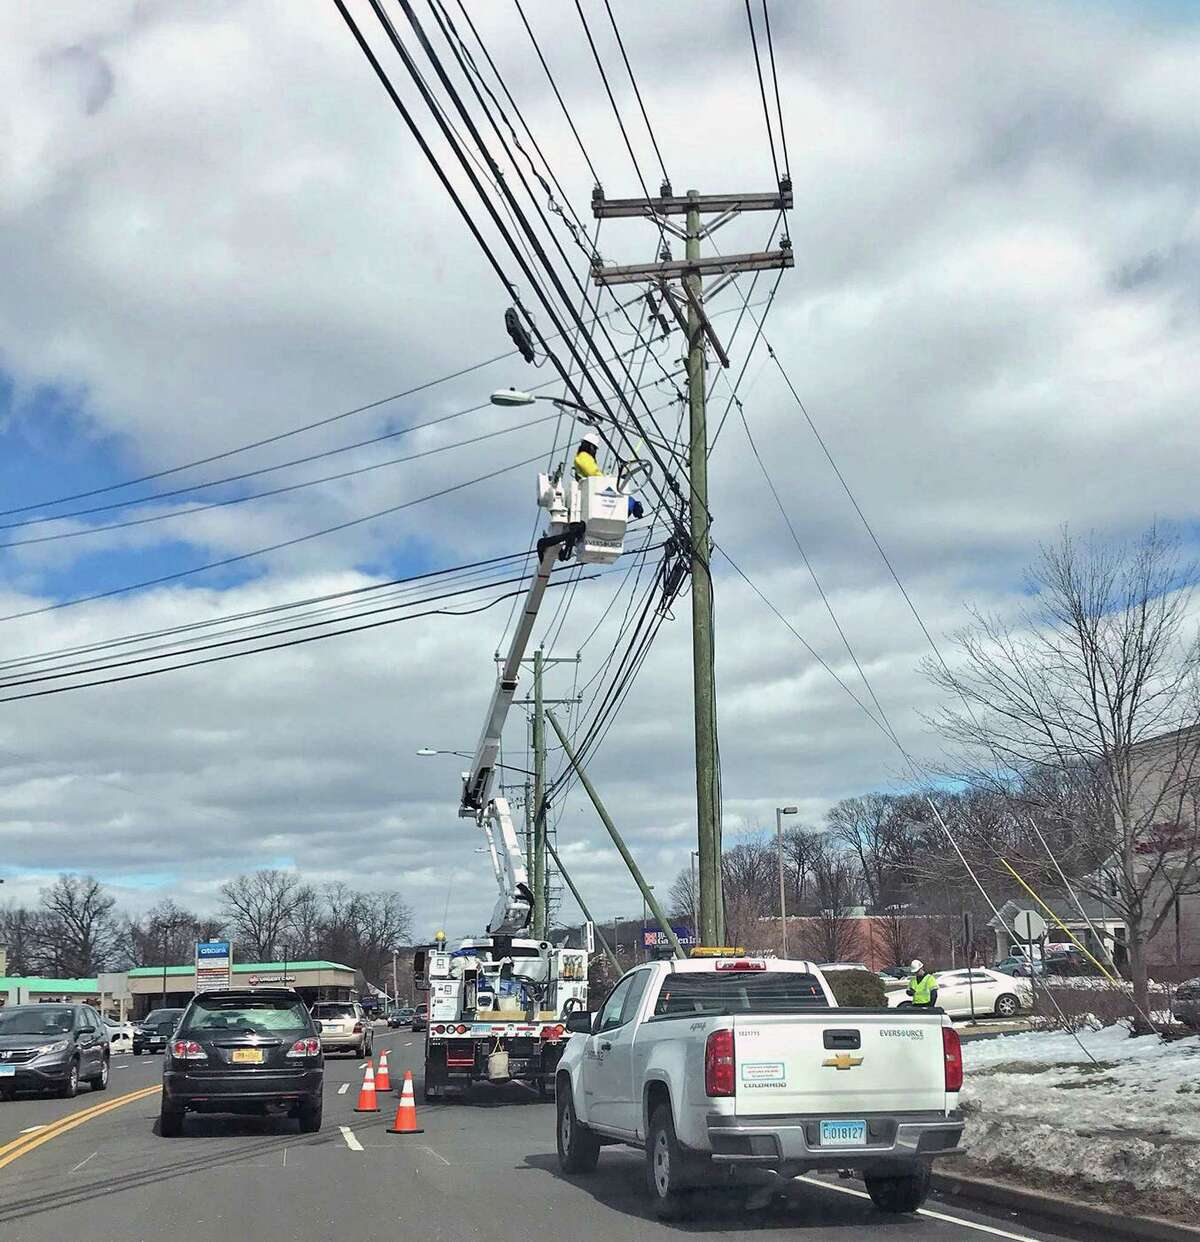 An Eversource Energy crew works on wires in March 2018 on Main Avenue in Norwalk, Conn.